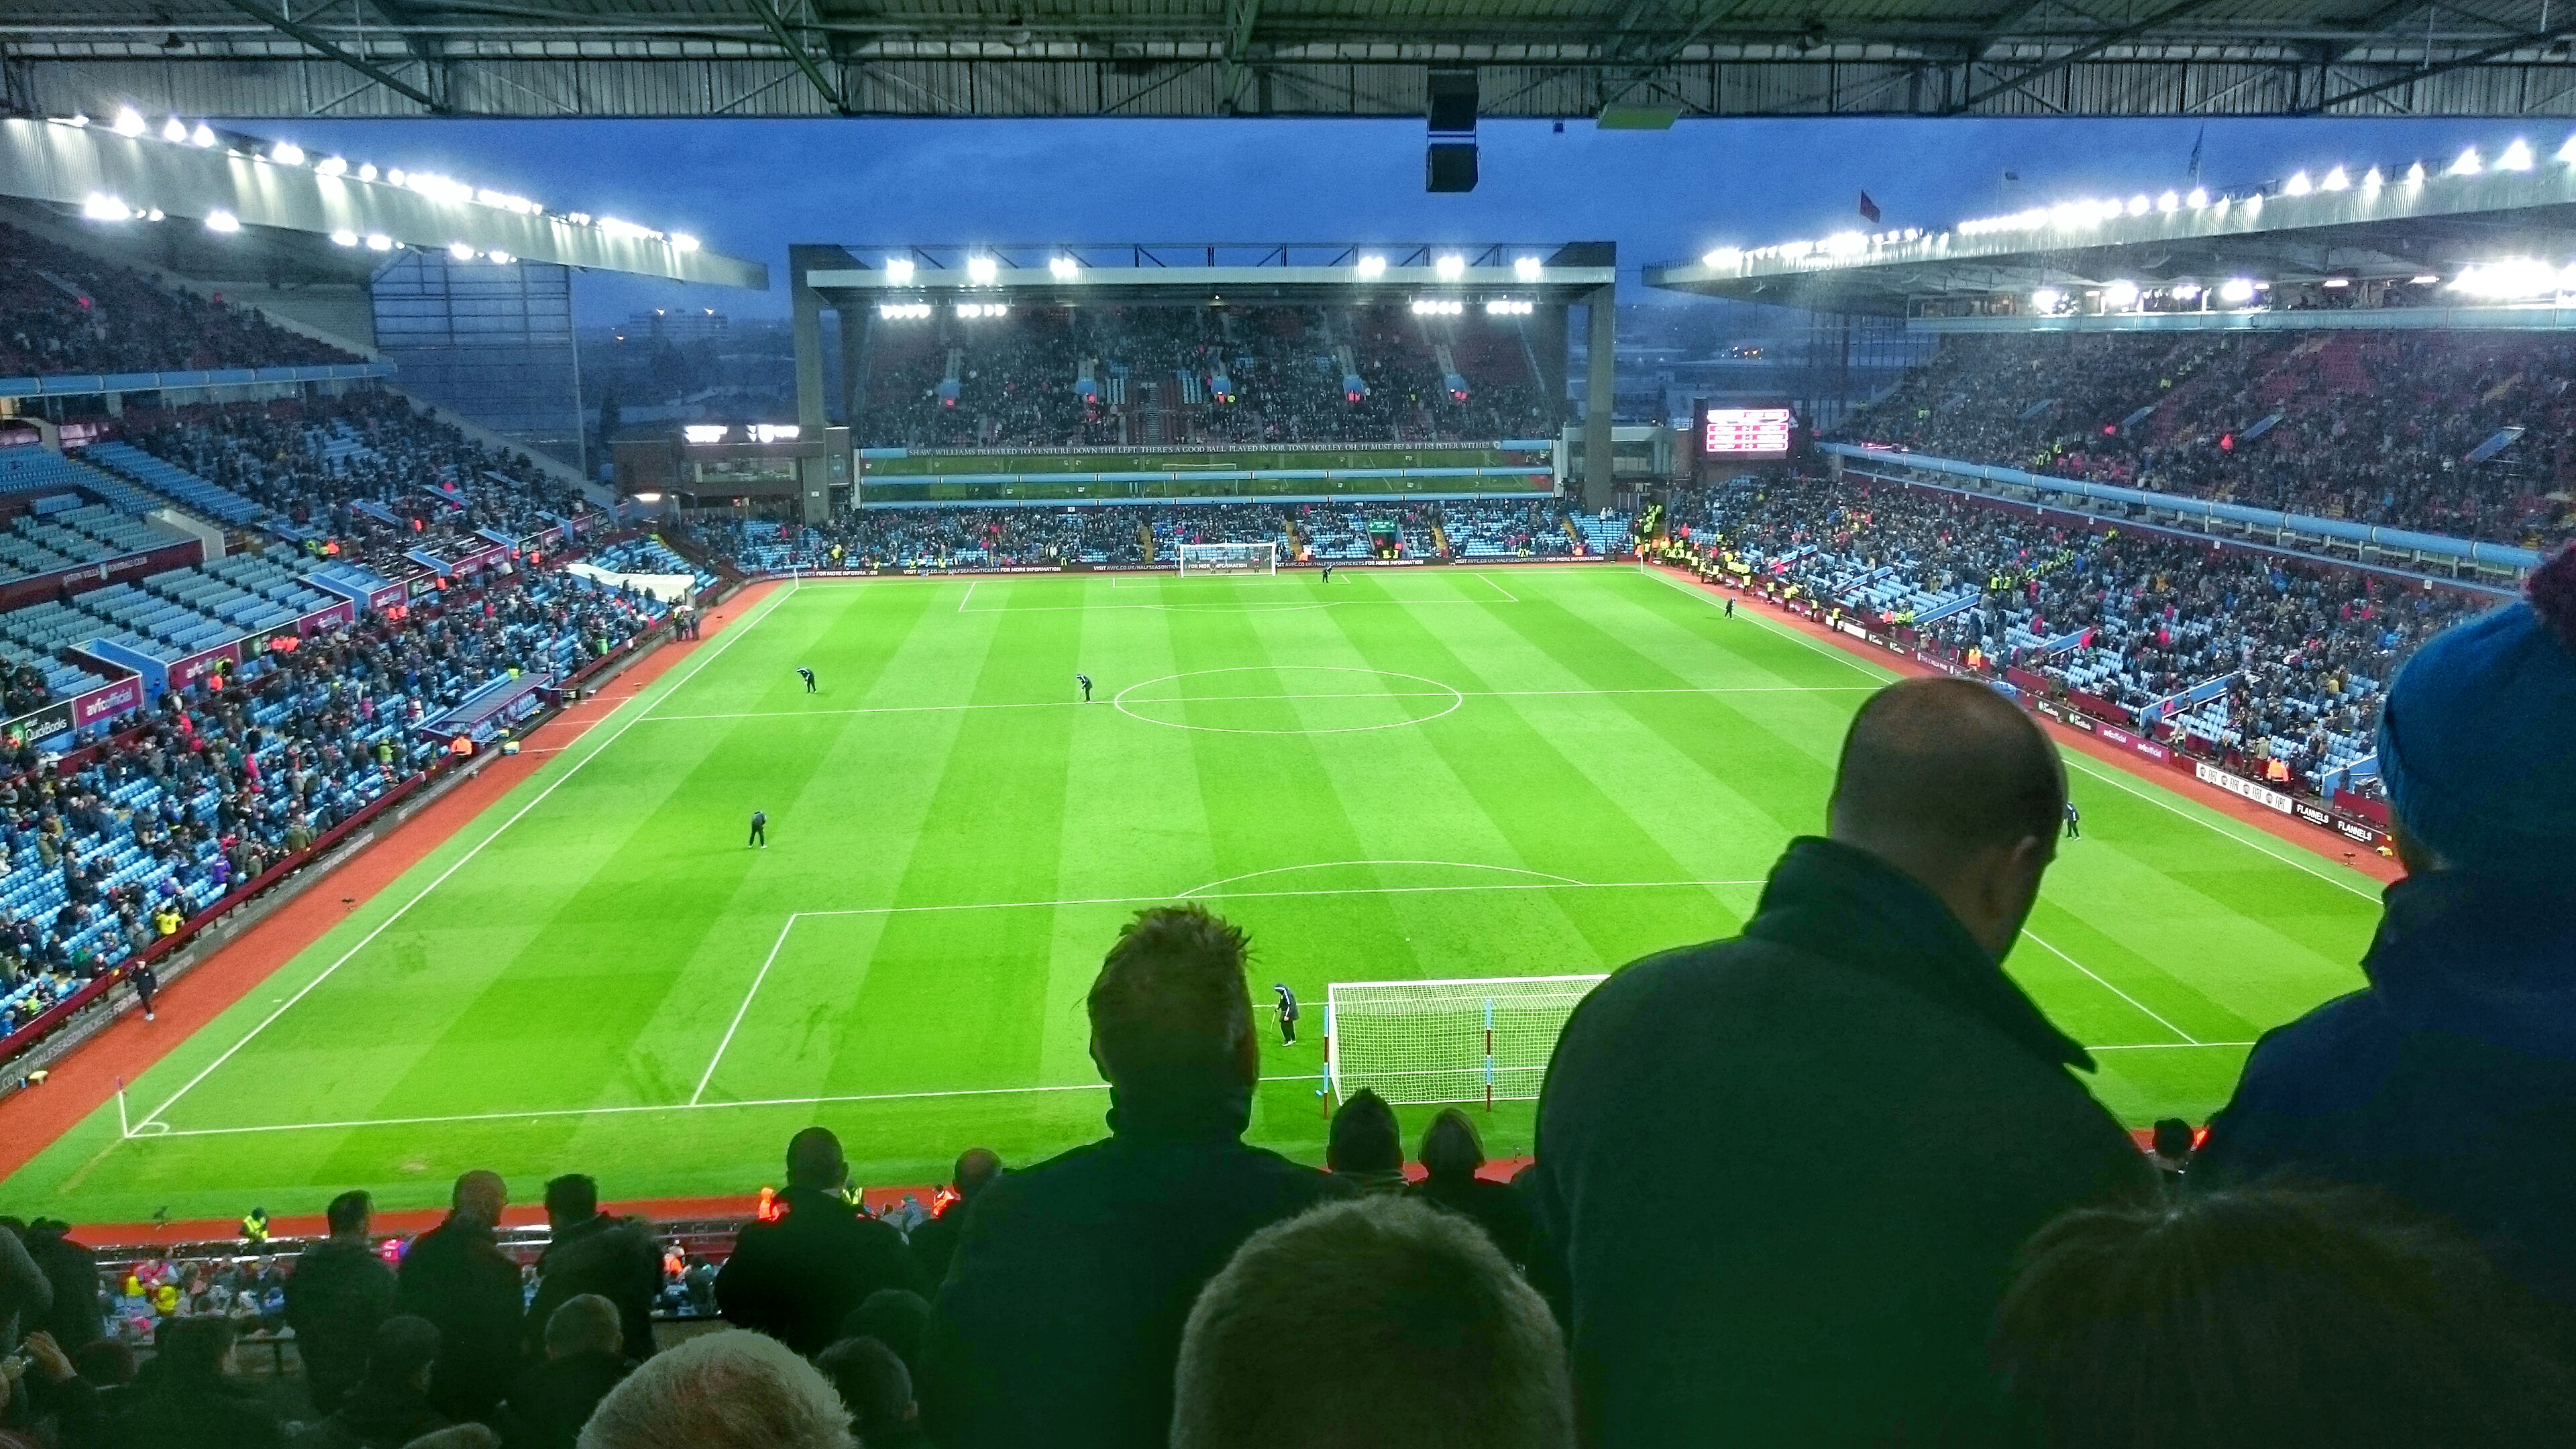 Win, Lose or Draw - Villa Park never fails to look incredible.